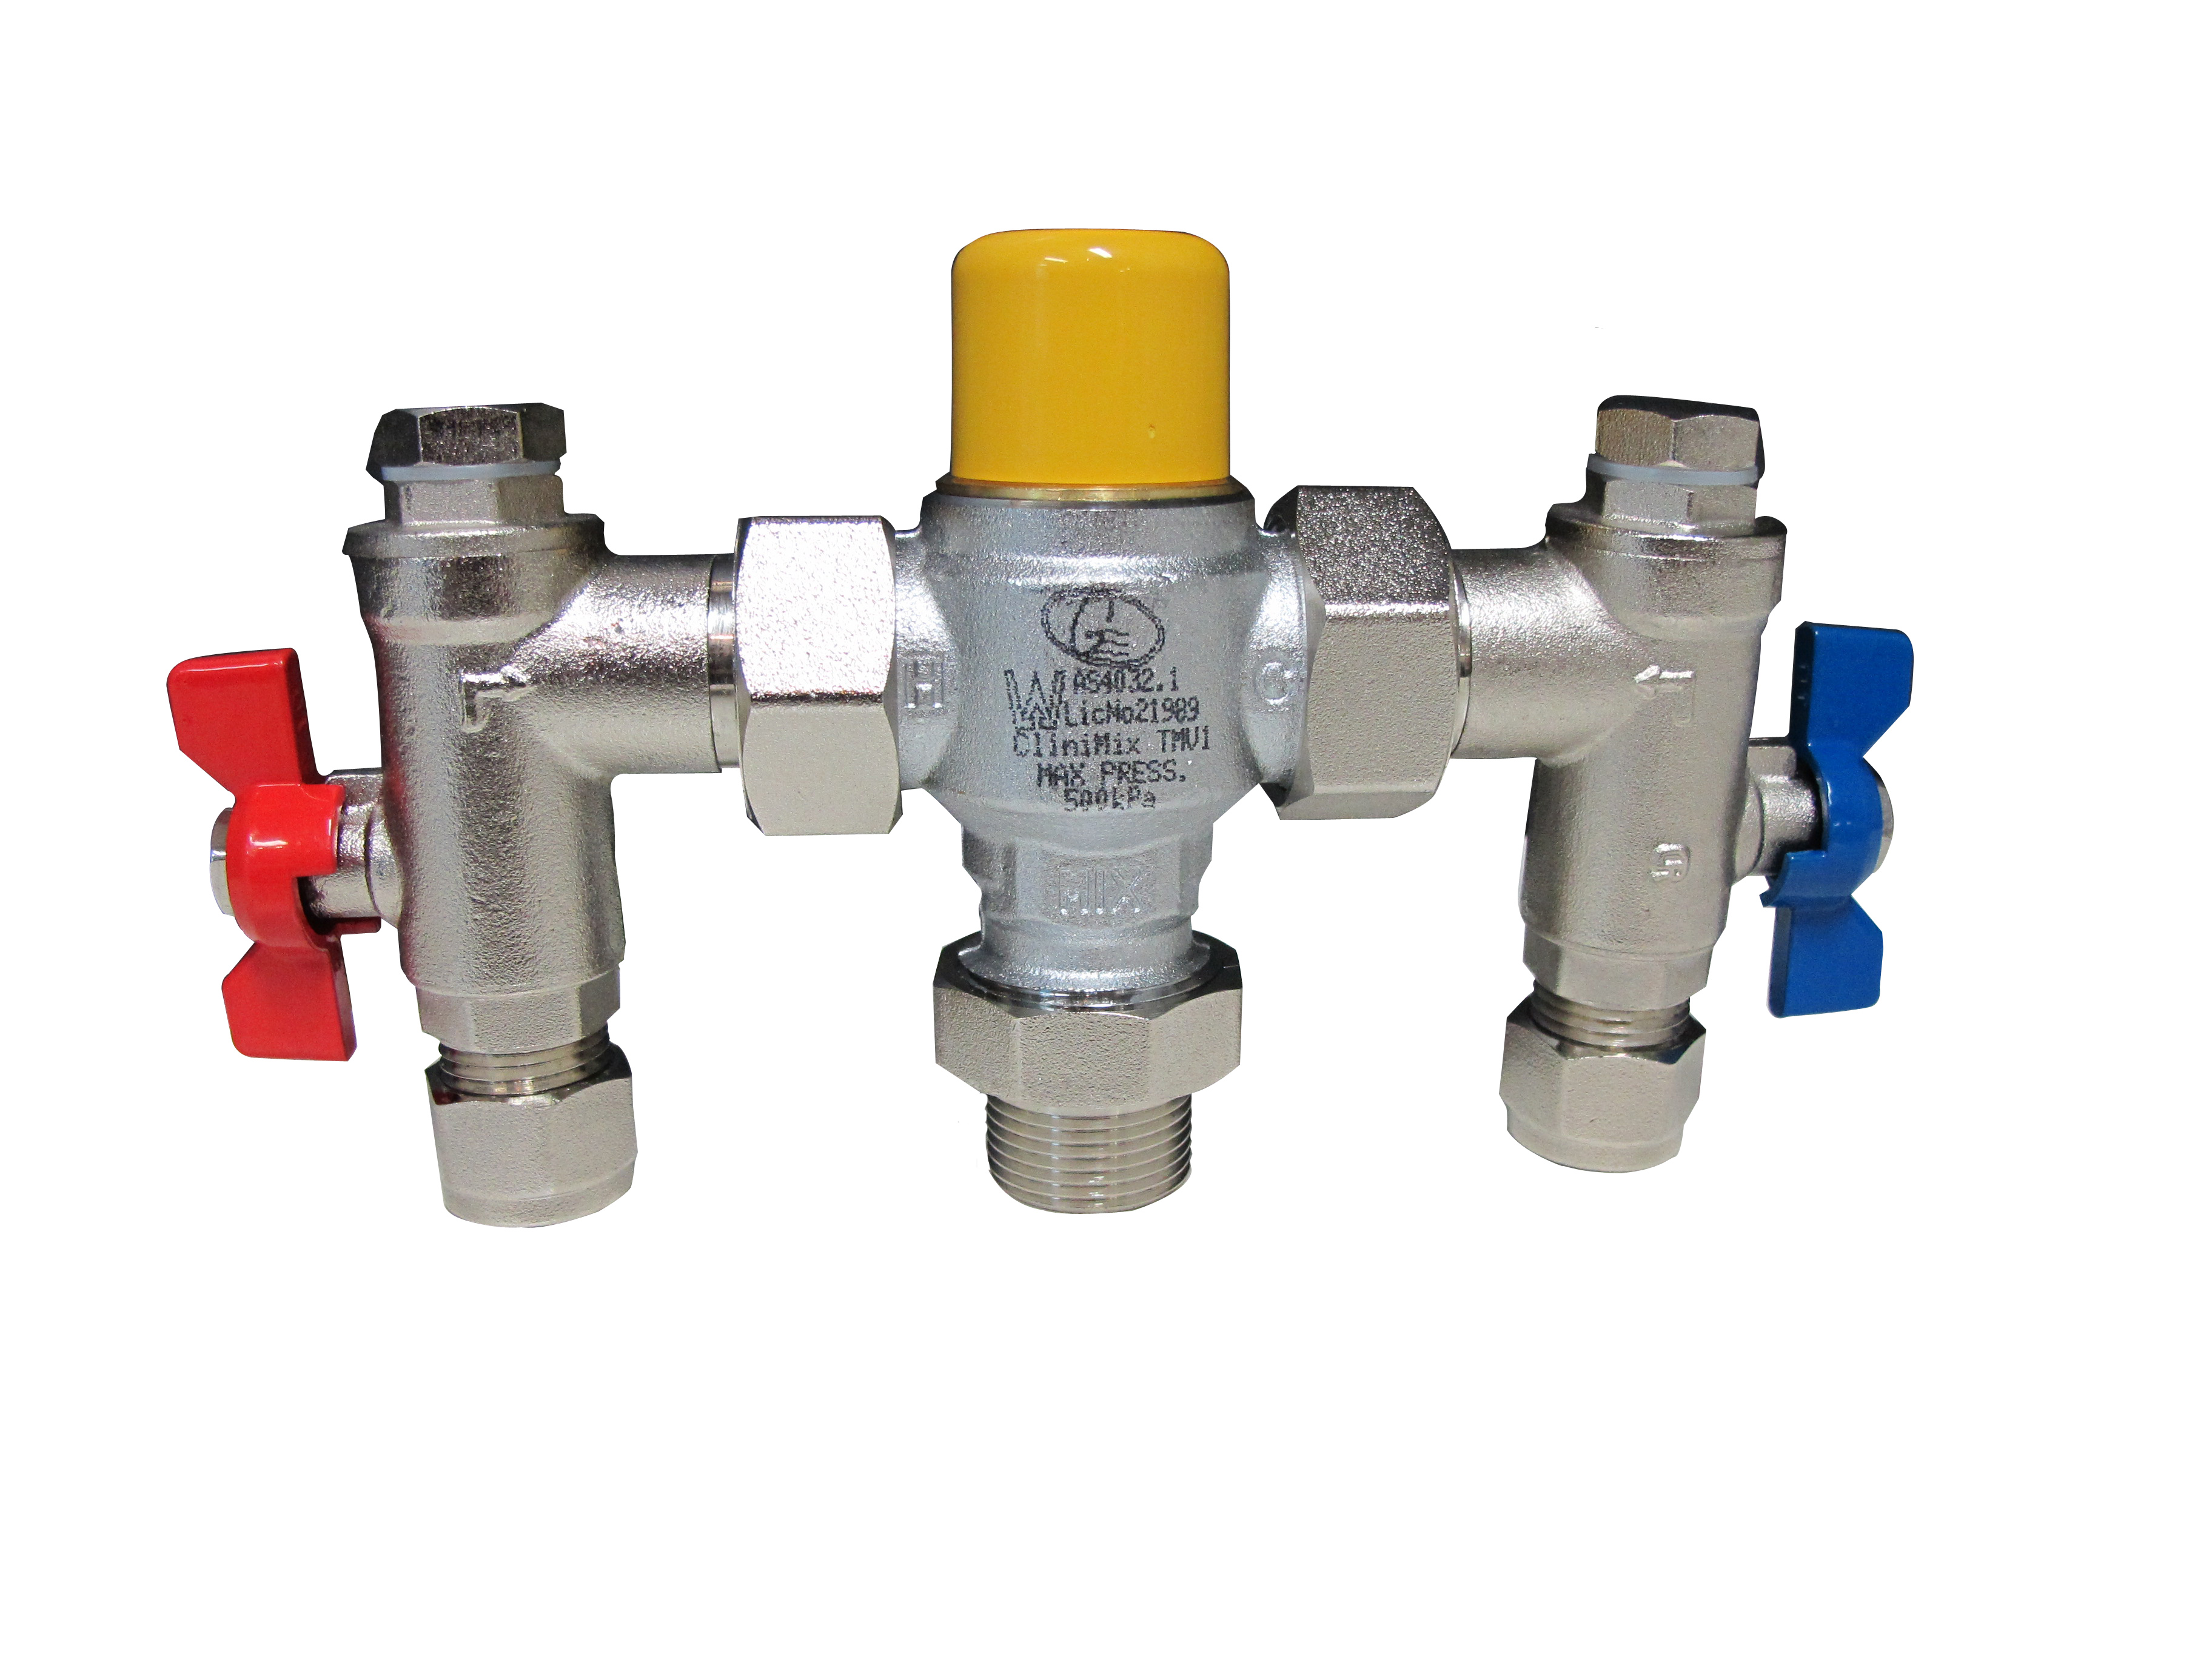 tmv questions How thermostatic mixer valves work what is a thermostatic mixing valve a thermostatic mixing valve is a device that mix or blends hot water (usually stored at temperatures high enough to kill bacteria) with cold water to ensure constant, safe outlet temperatures preventing scalding.